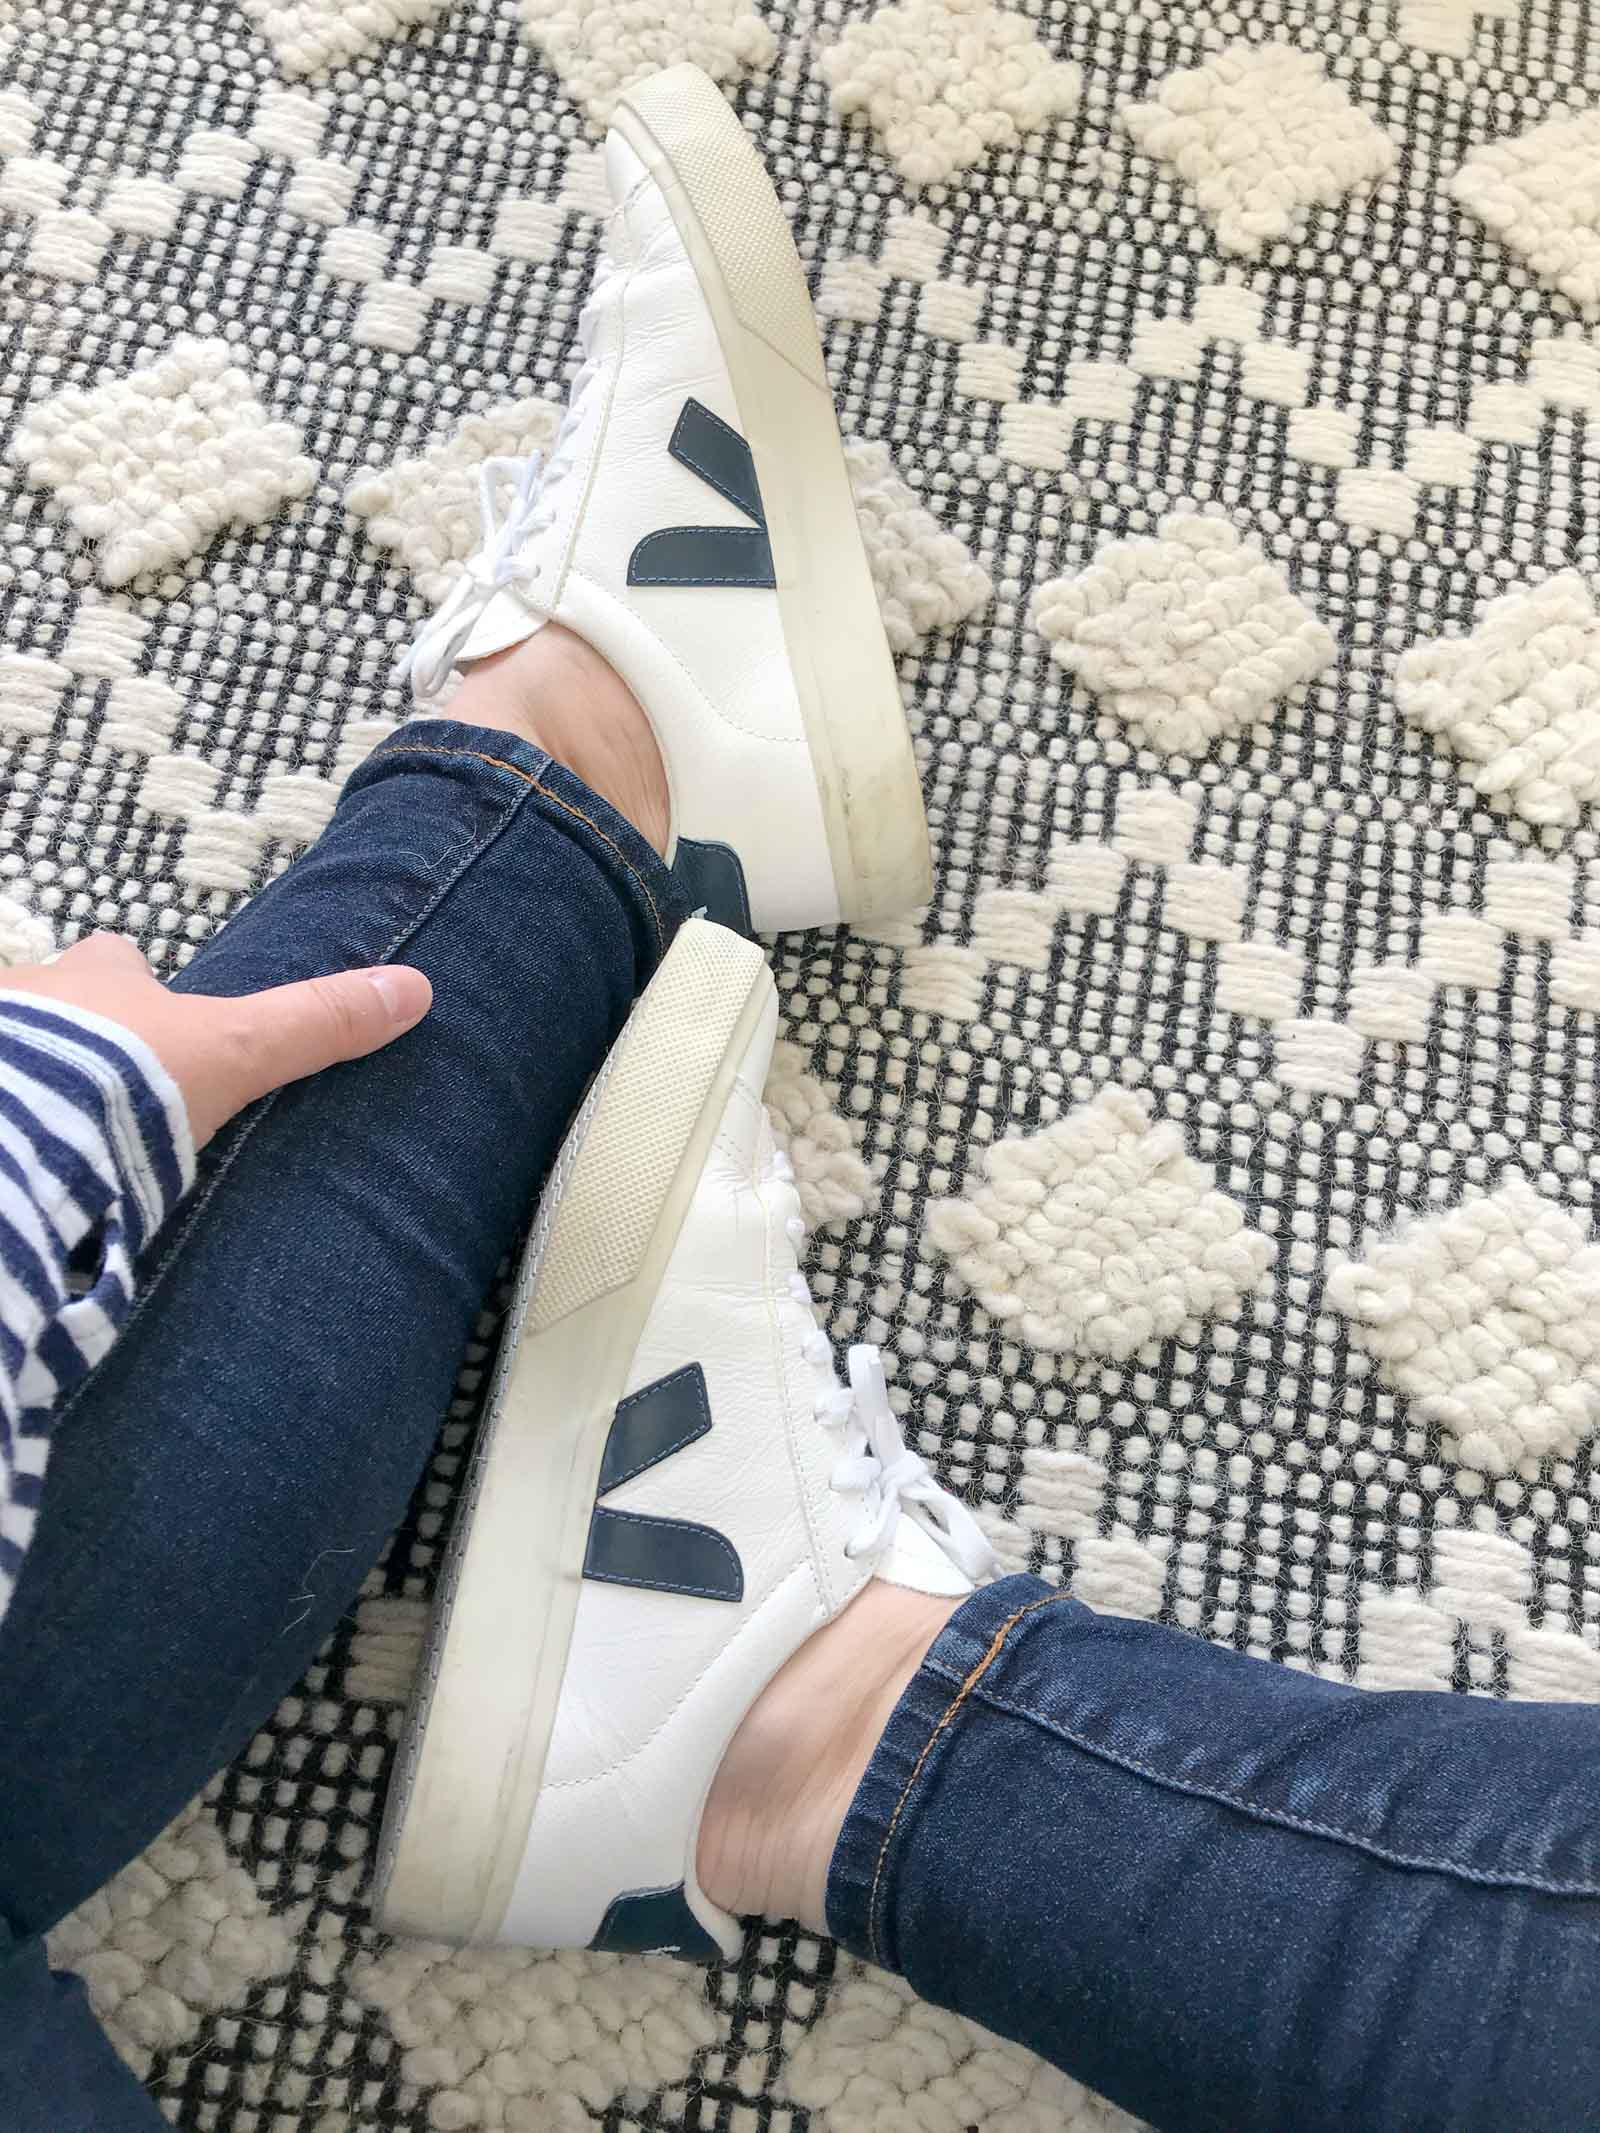 Veja Sneakers Review ⋆ chic everywhere